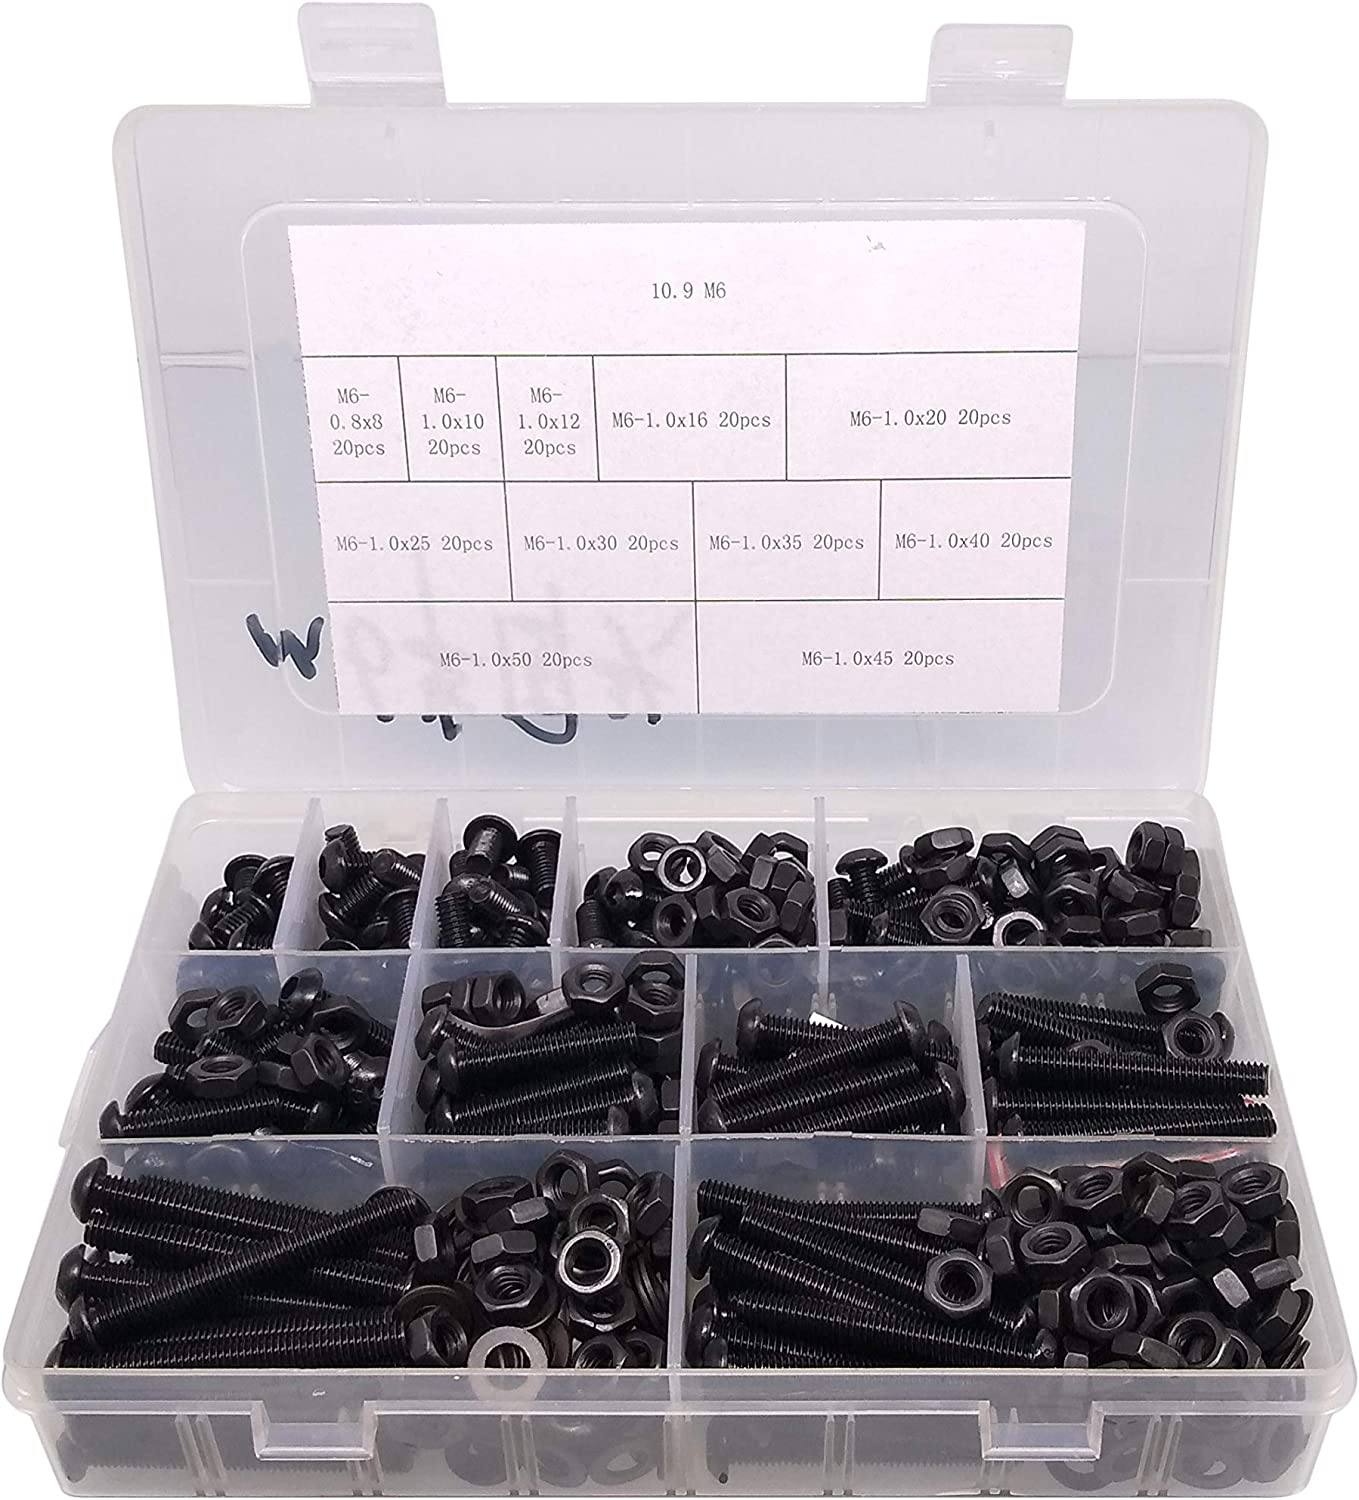 60Pcs M6 Hex Socket Screw Set 304 Stainless Steel Black Cup Head Nut Combination Boxed Anti‑Rust Fasteners Inserts Tool for Restoring Threads Automotive Repair